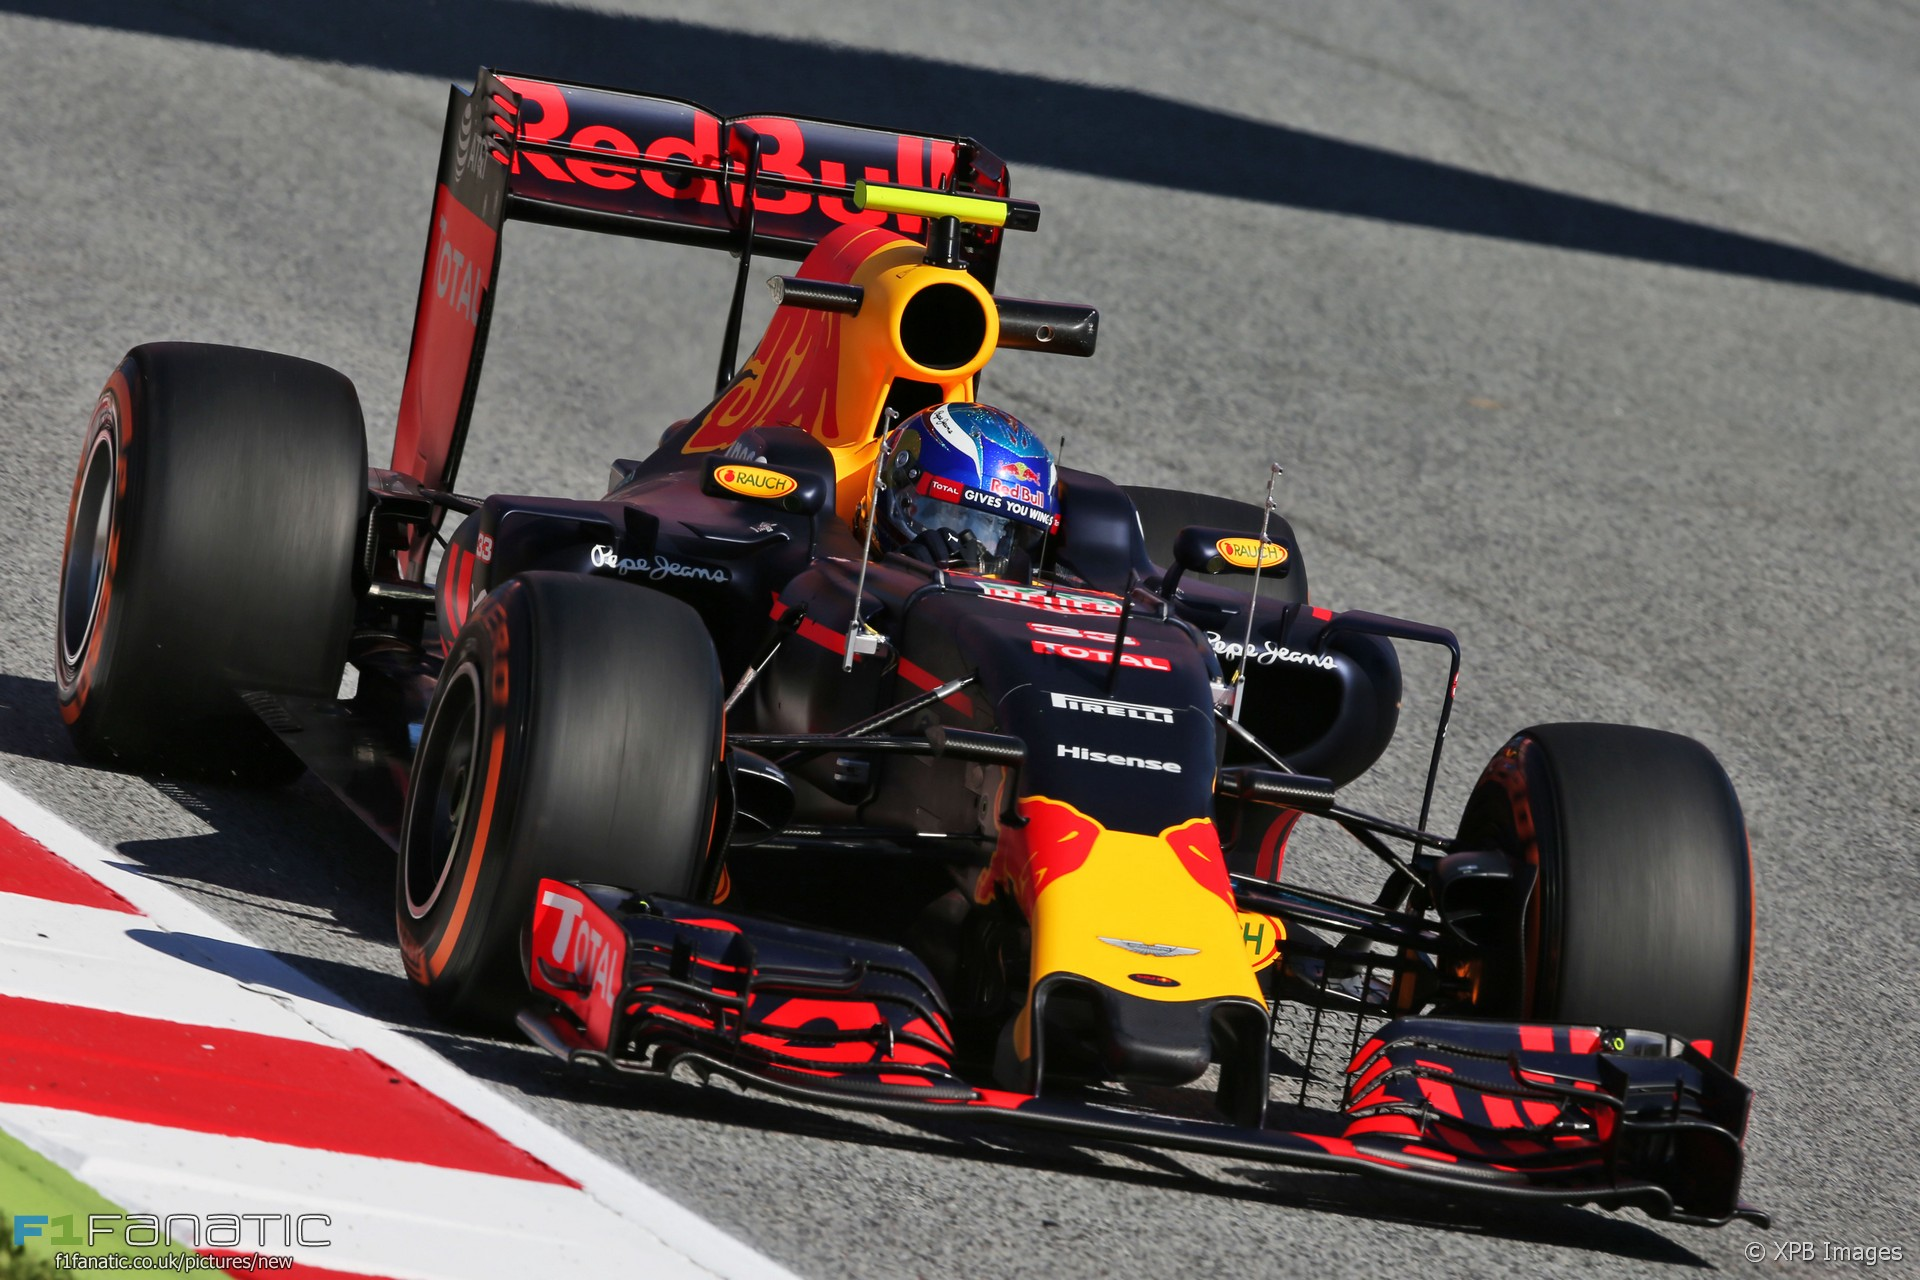 max verstappen red bull circuit de catalunya 2016 f1. Black Bedroom Furniture Sets. Home Design Ideas